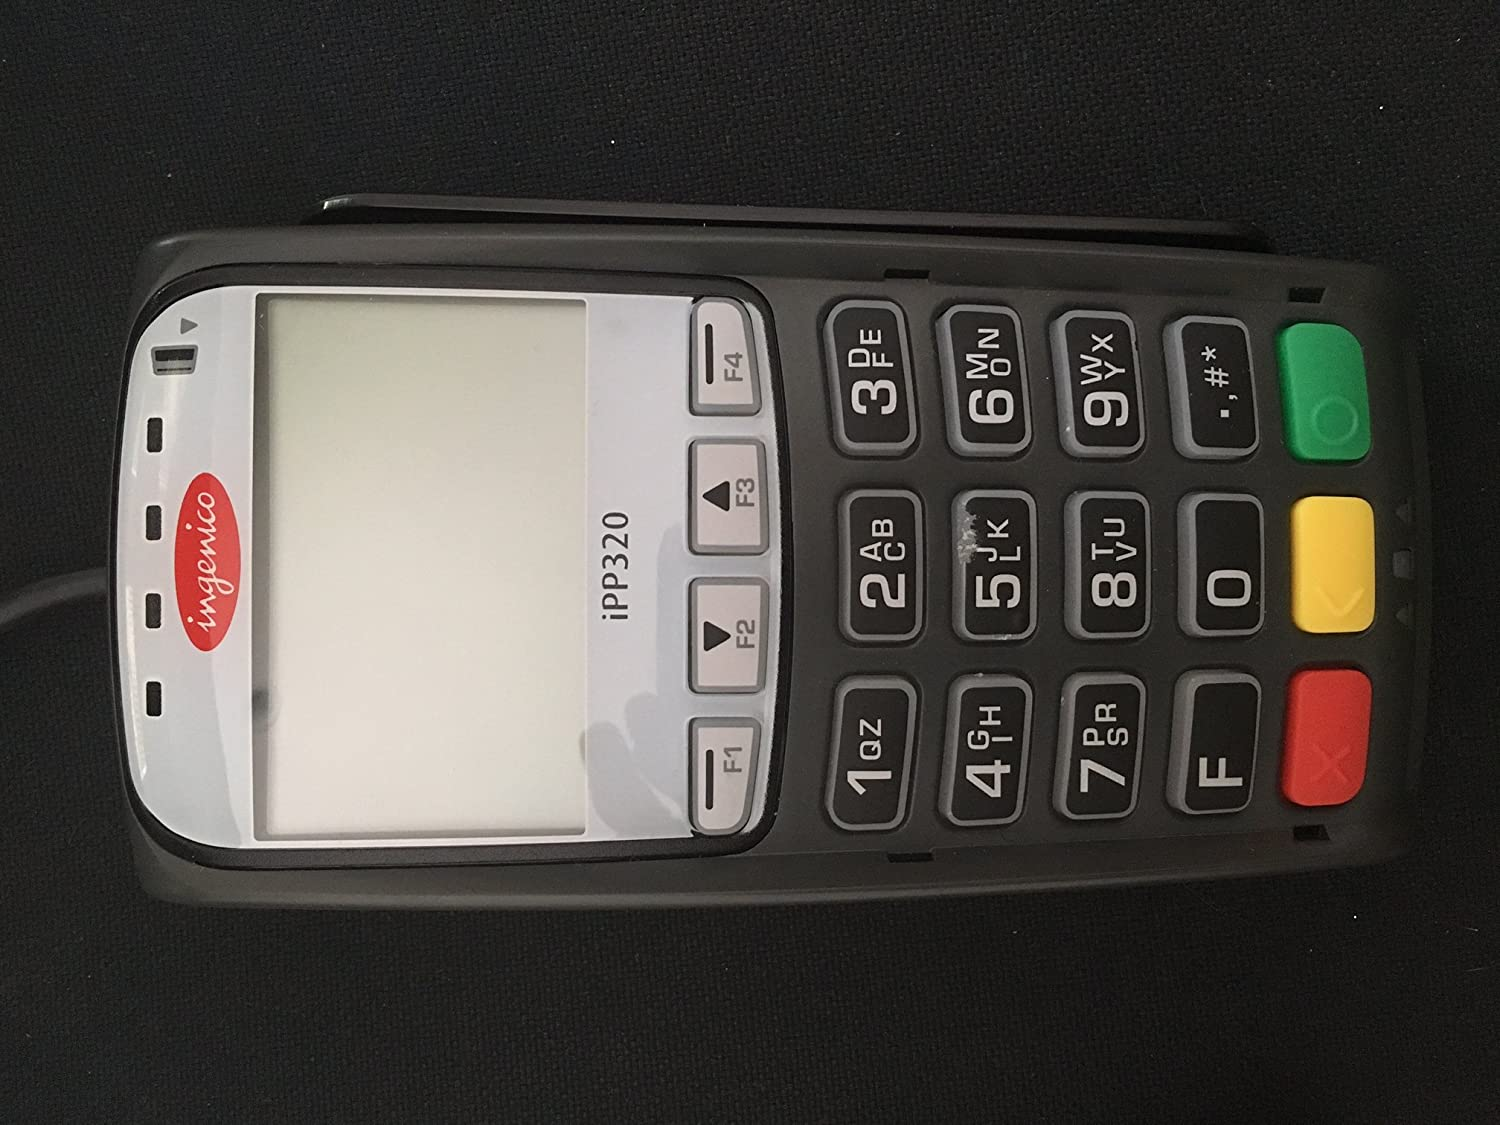 Ingenico iPP350 Contactless Payment Terminal with Data Cable